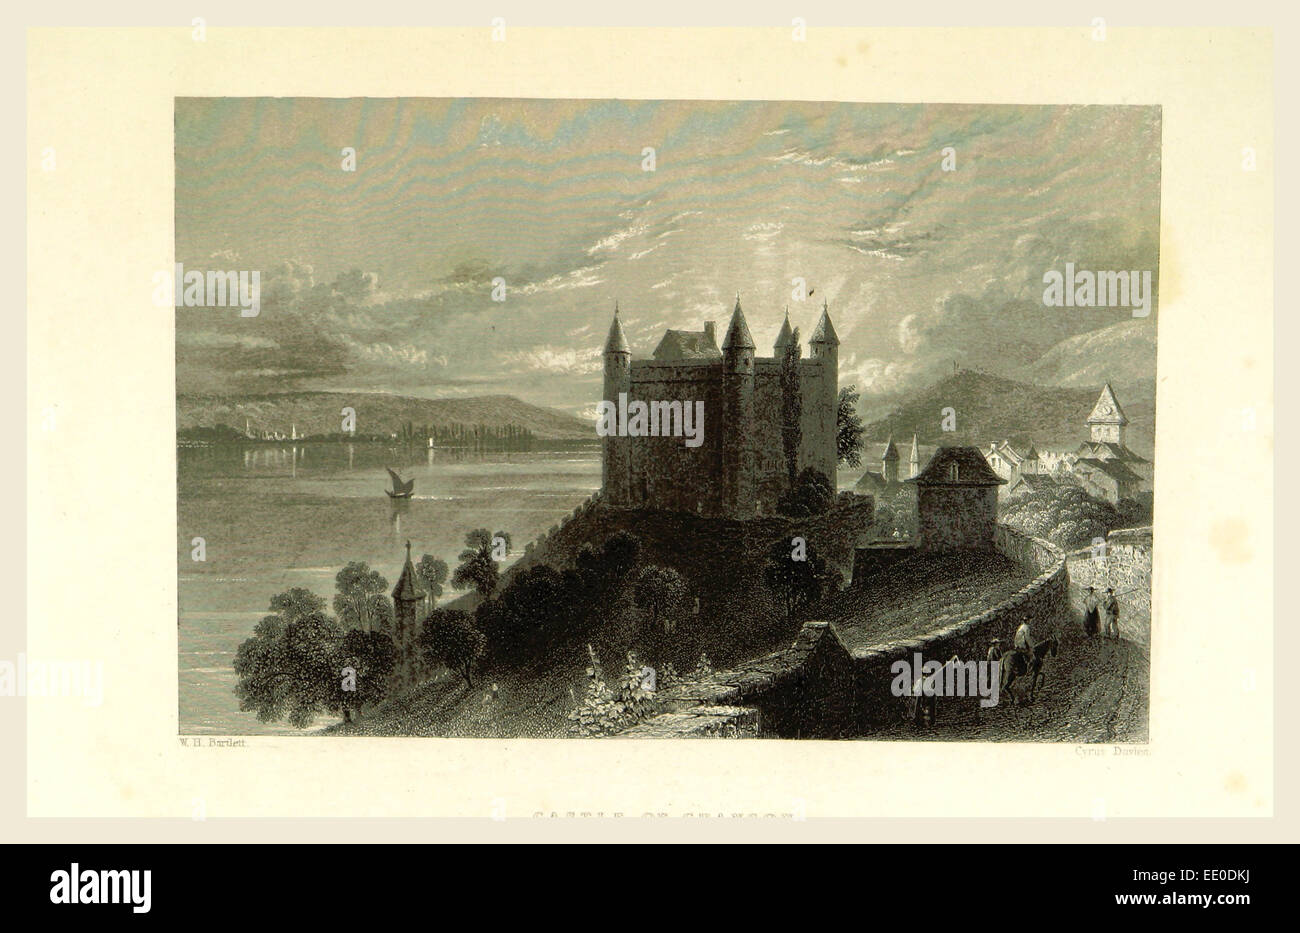 Switzerland, Castle Illustrated in a series of views taken expressly for this work by W. H. Bartlett,, 19th century - Stock Image